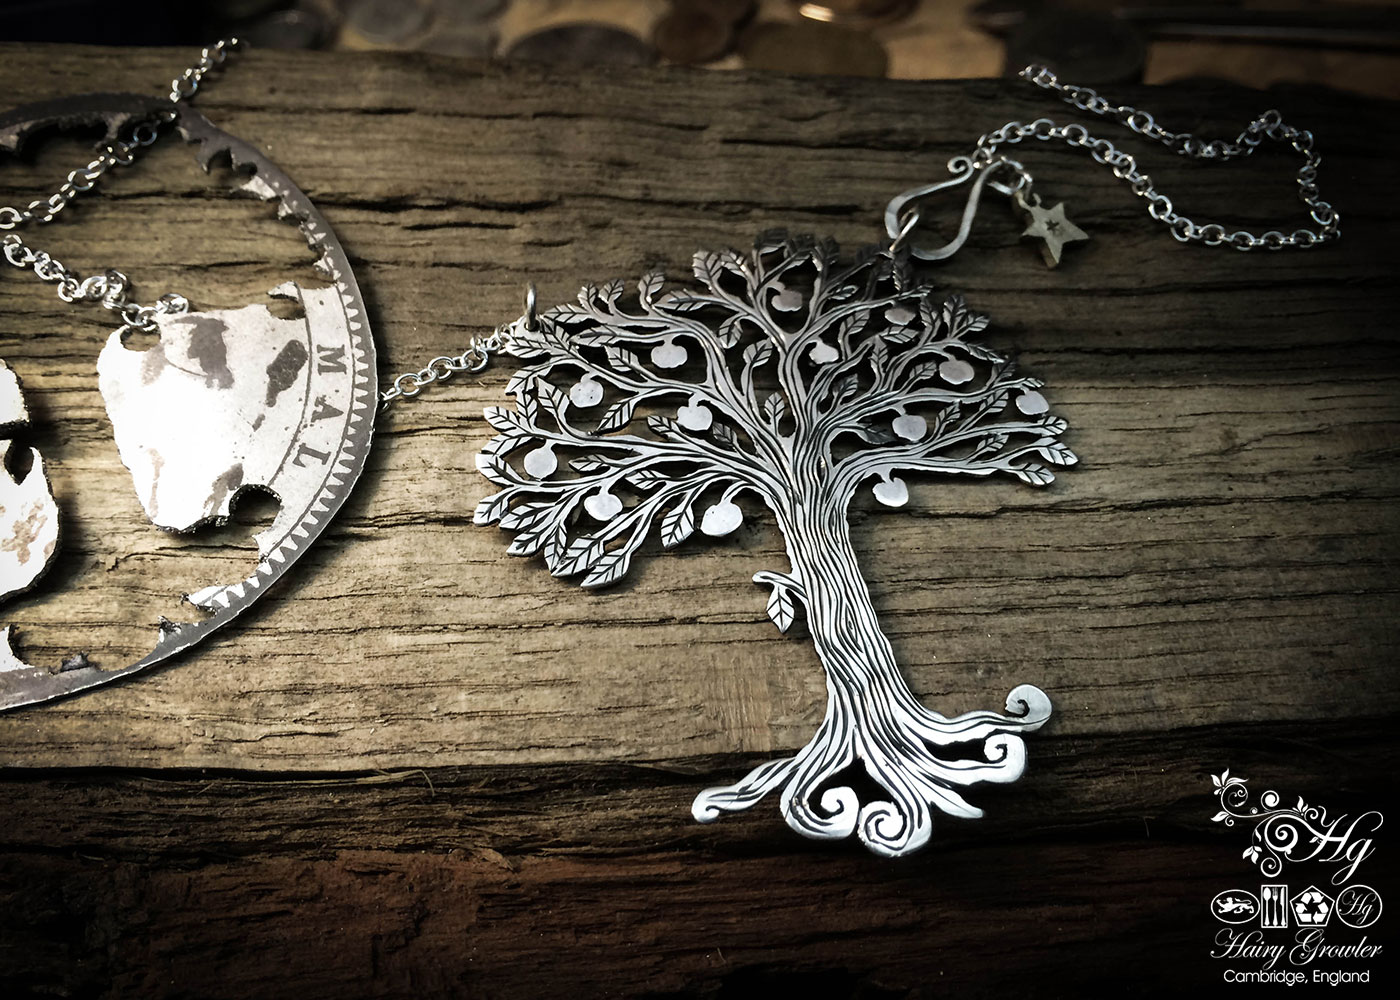 Handmade and upcycled silver Tree of Life necklace made from a silver crown coin